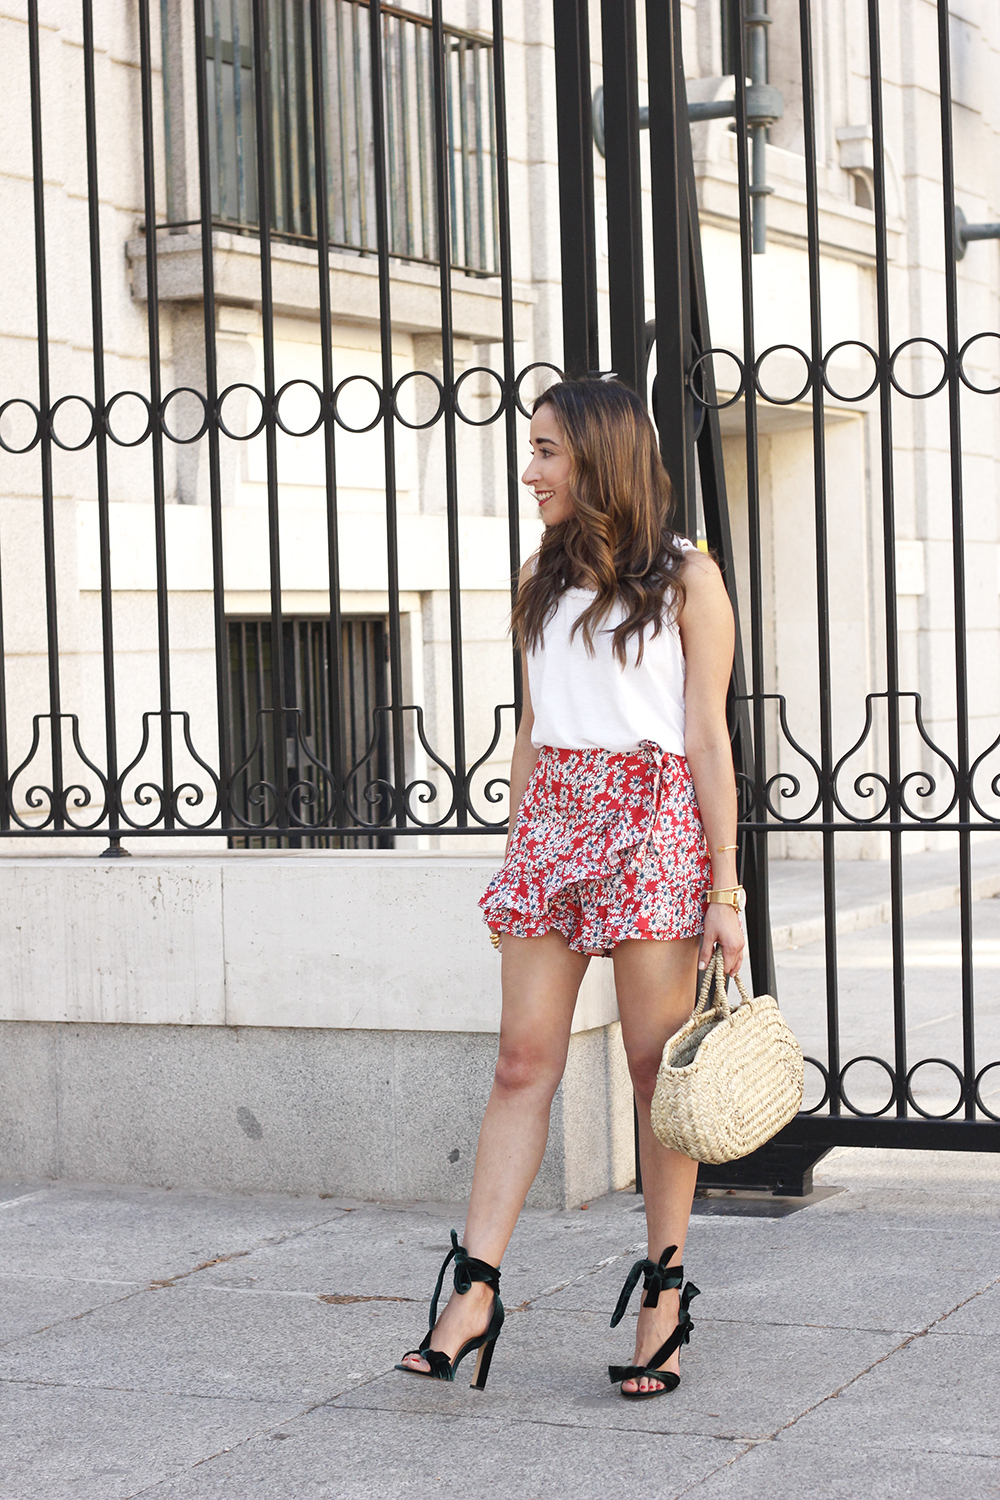 Velvet sandals floral skirt summer outfit style fashion08